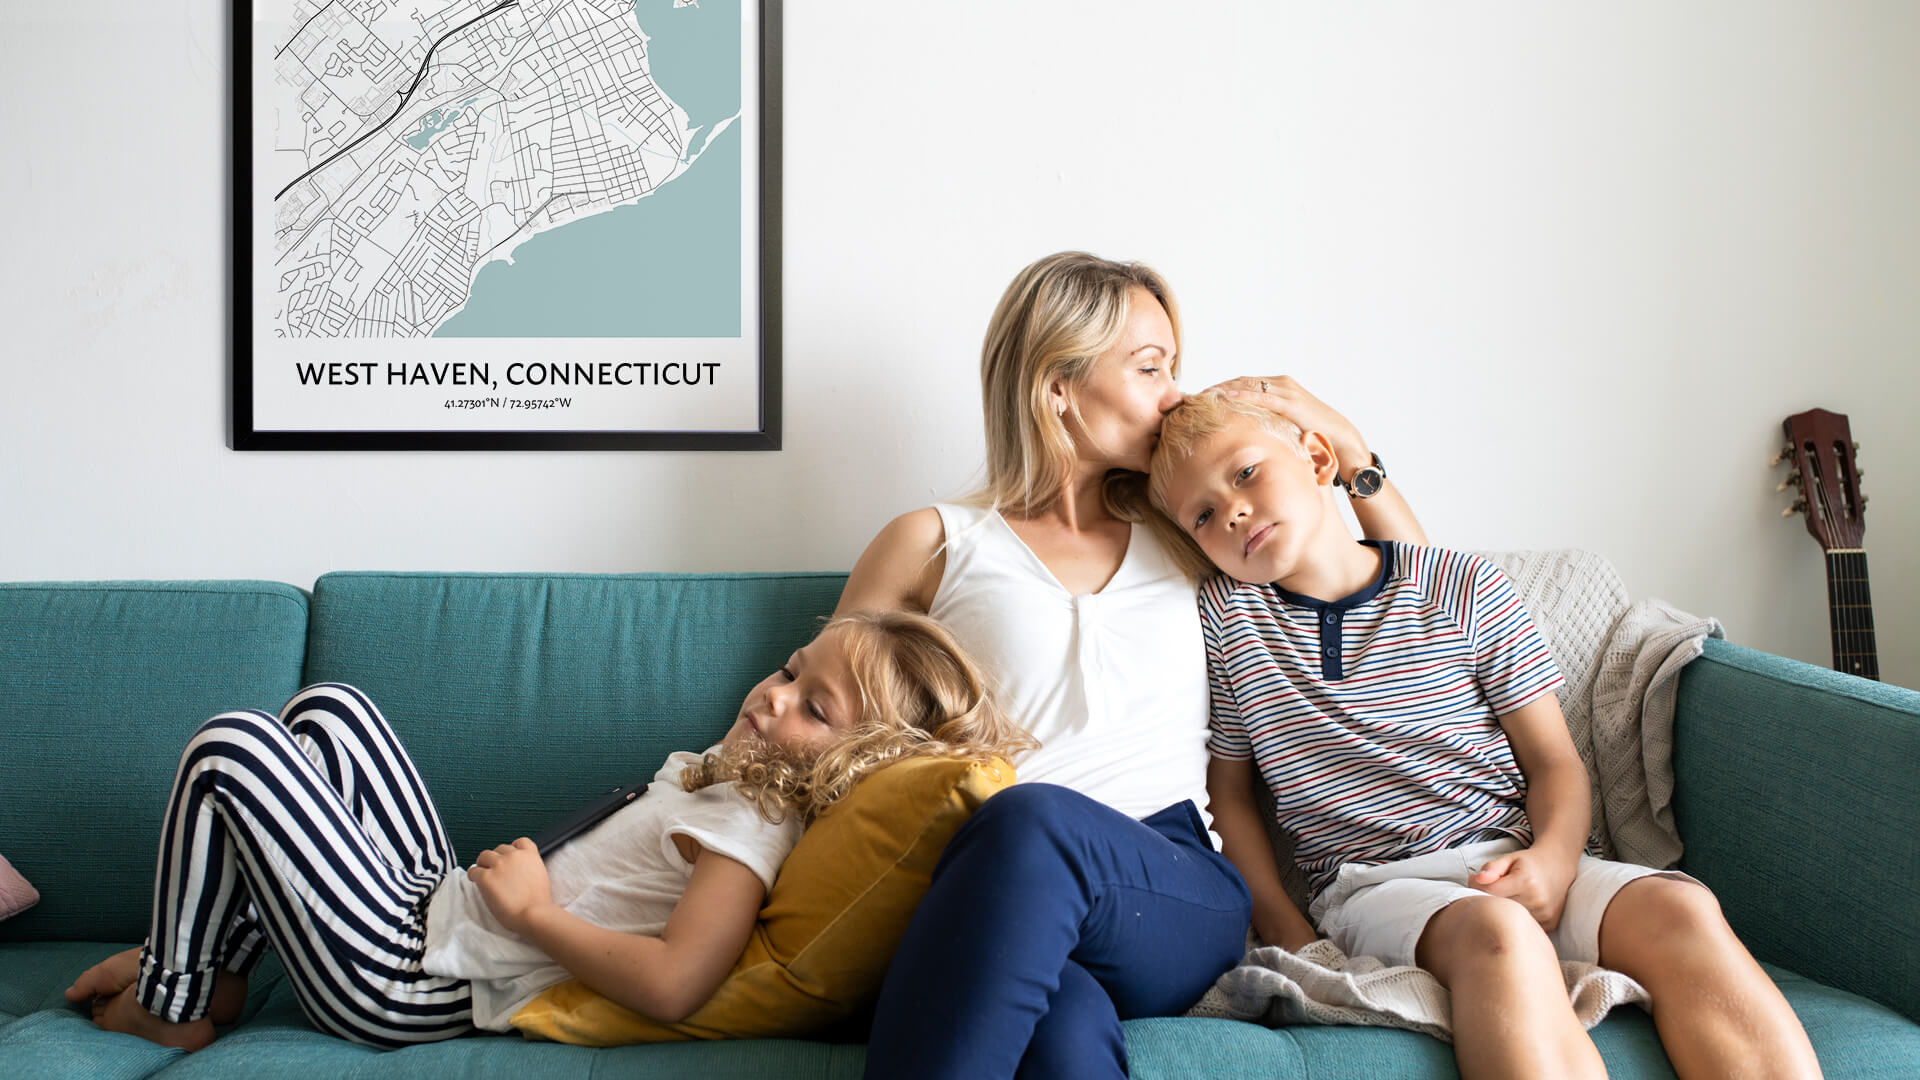 West Haven map poster